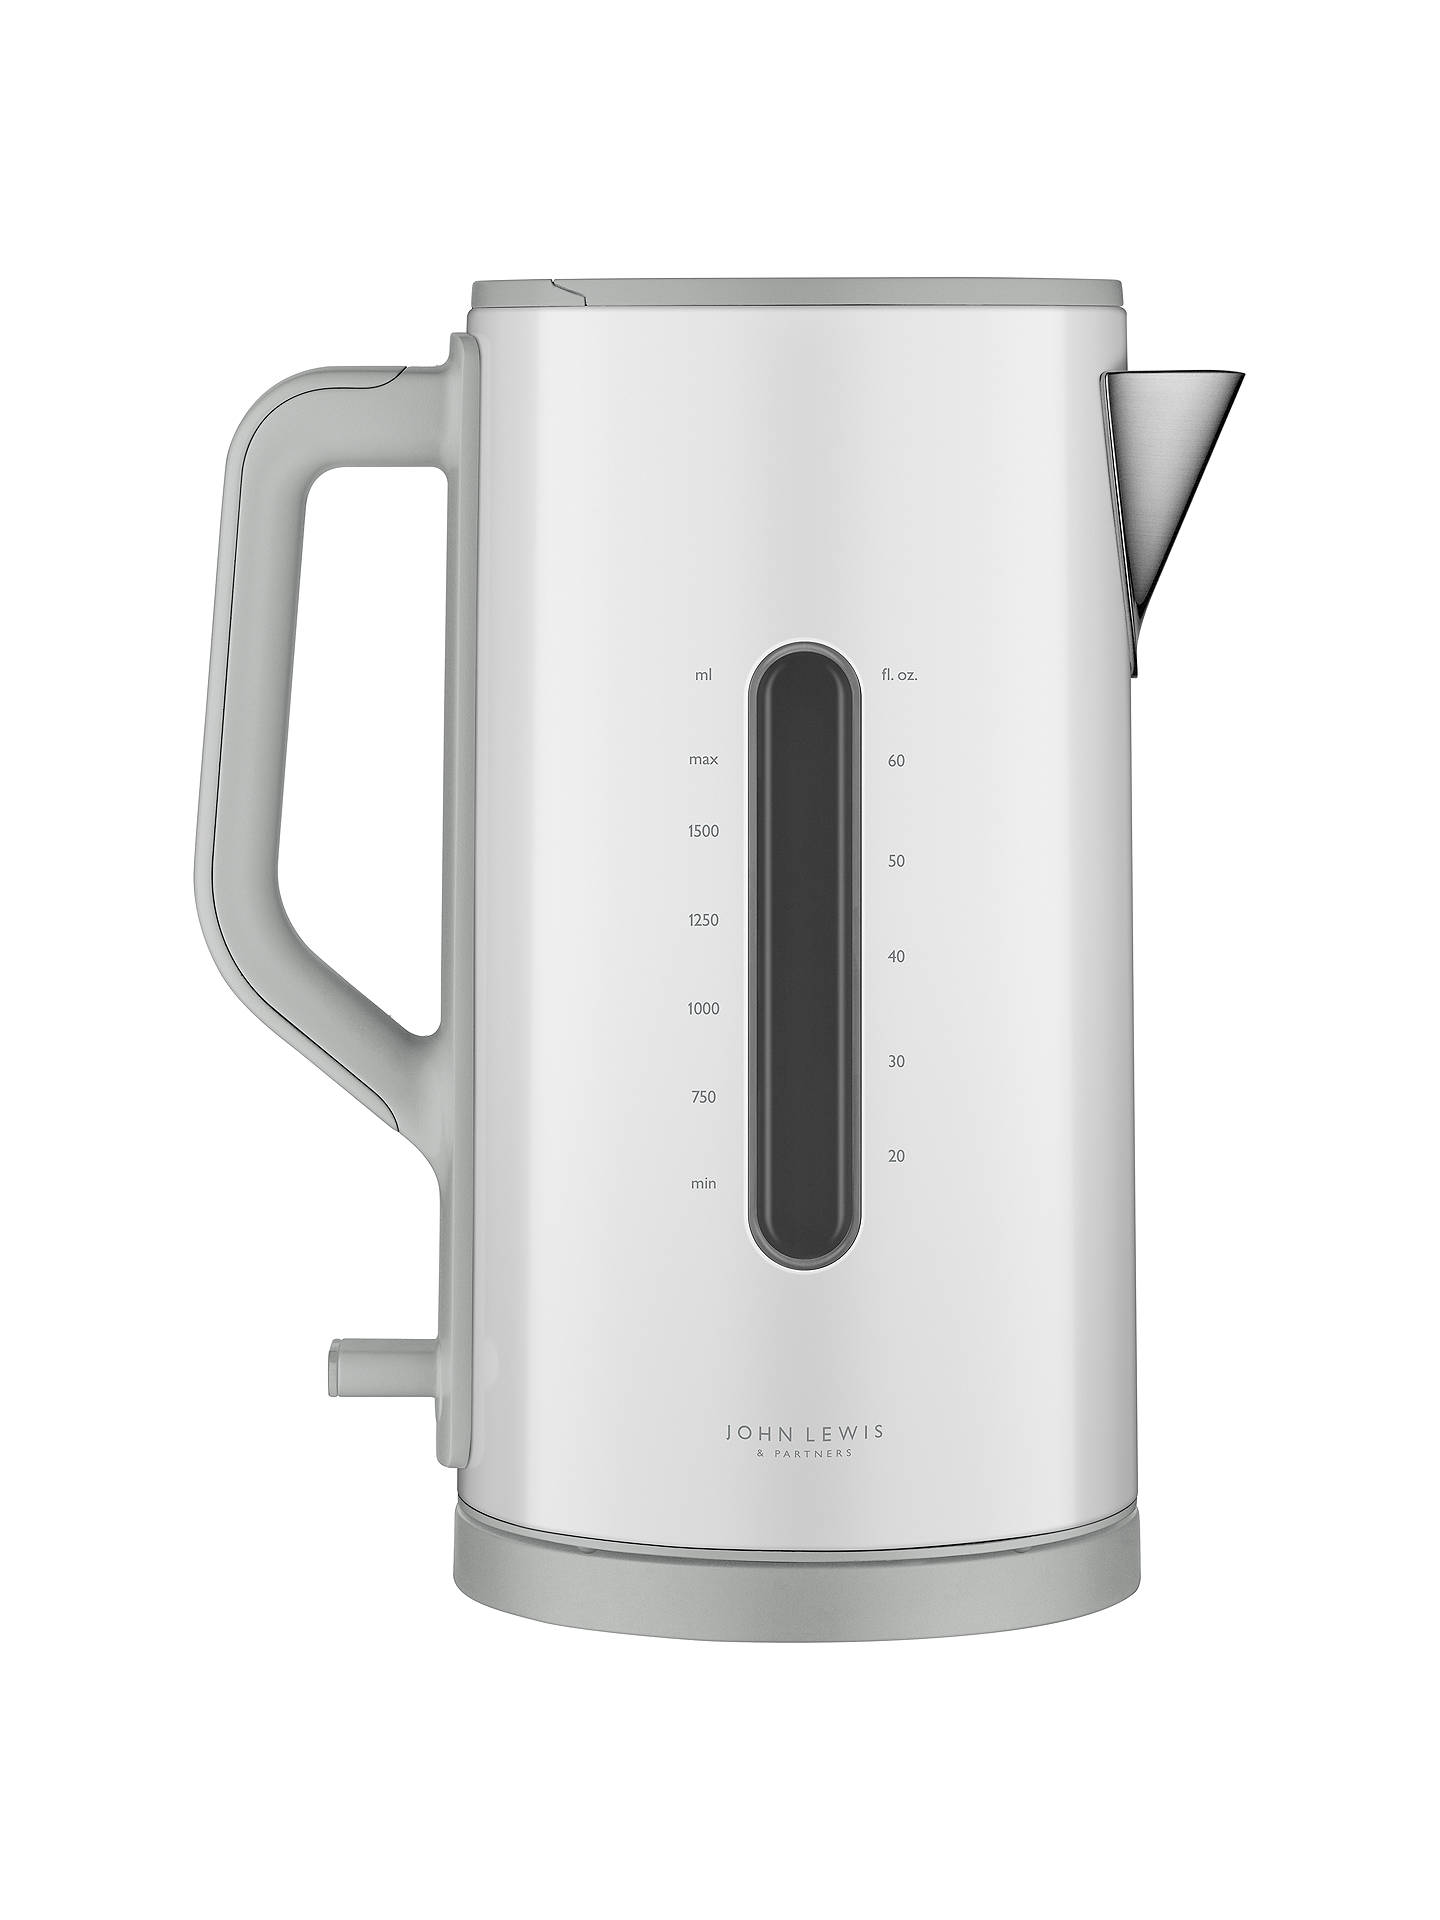 BuyJohn Lewis & Partners Simplicity Electric Kettle, White Steel Online at johnlewis.com